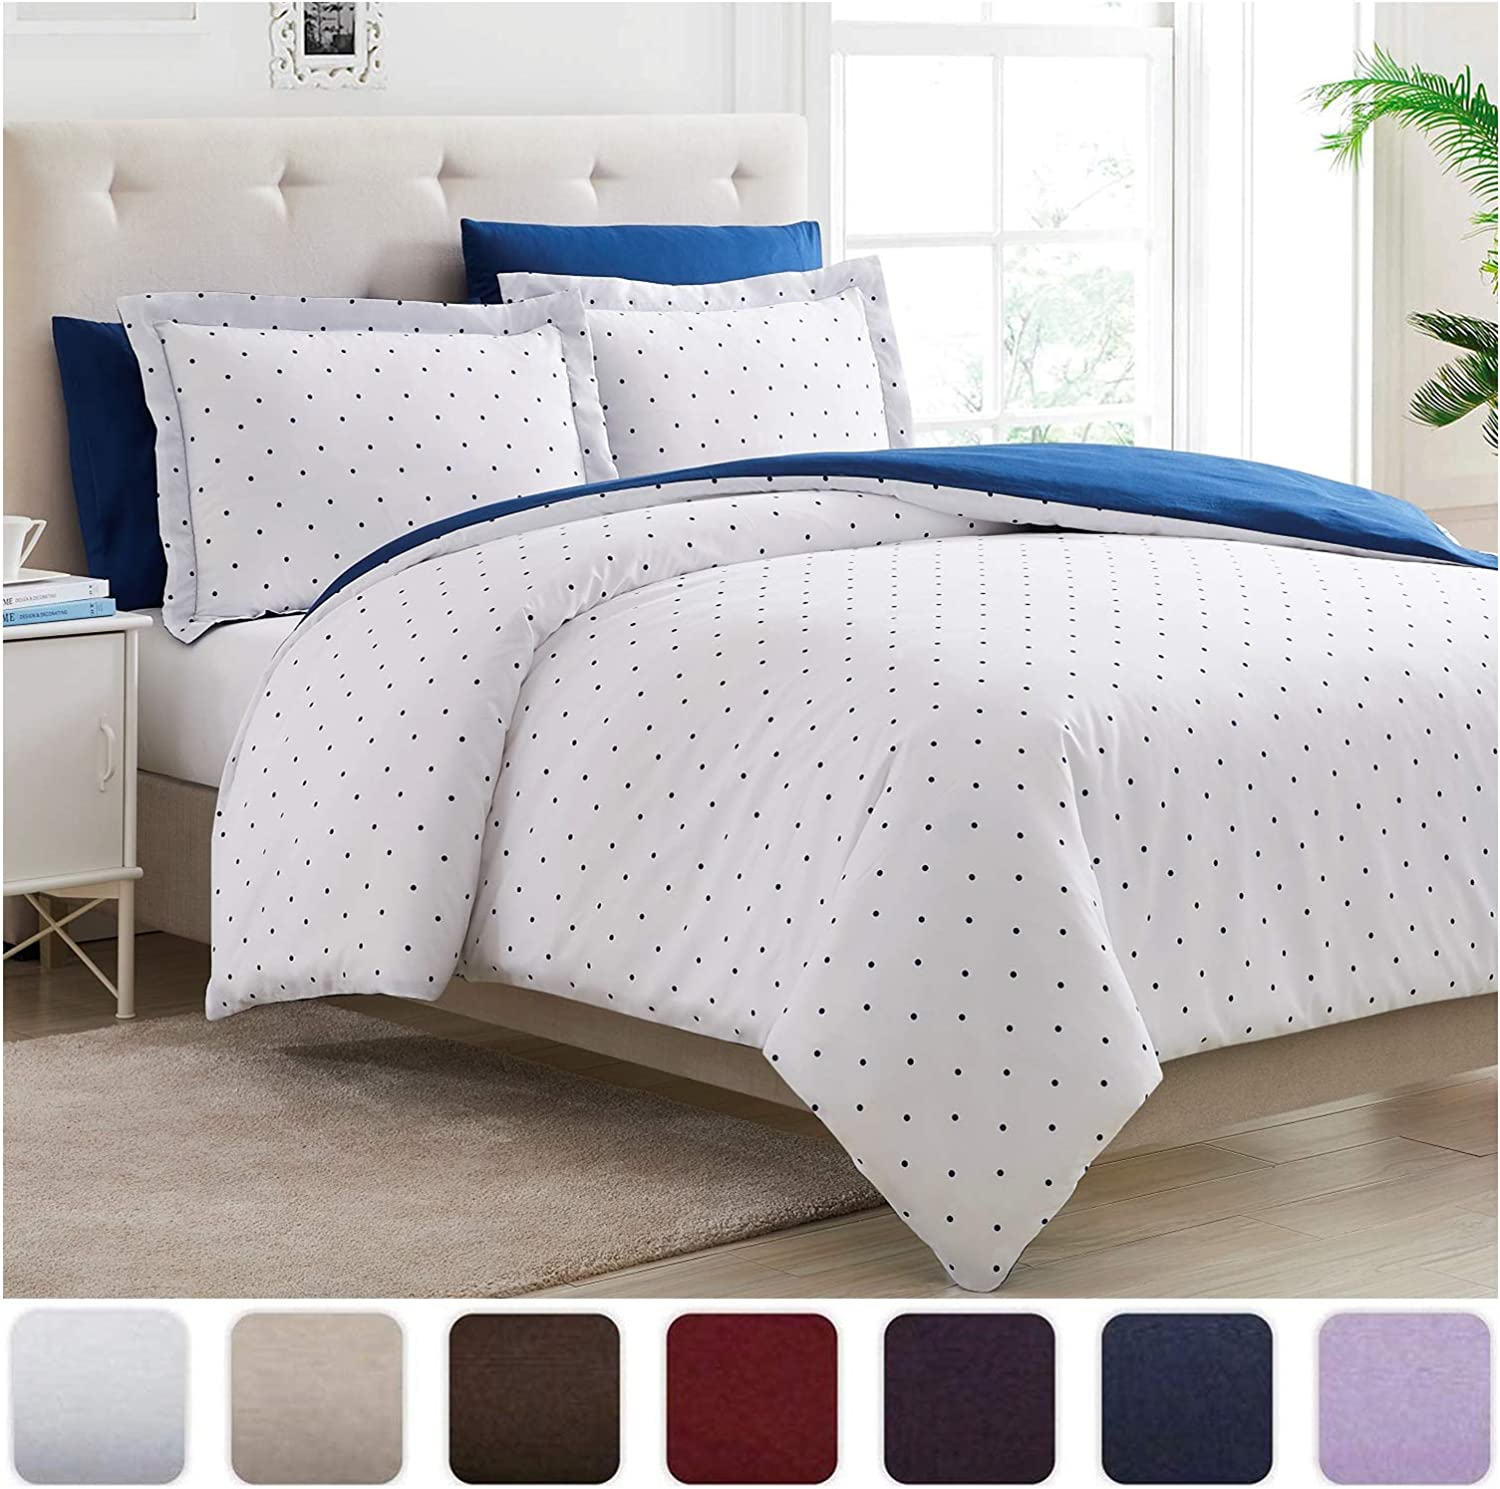 Fade Mellanni Duvet Cover Set Hotel Collection  Double Brushed Microfiber 1800 Bedding  Wrinkle Stain Resistant